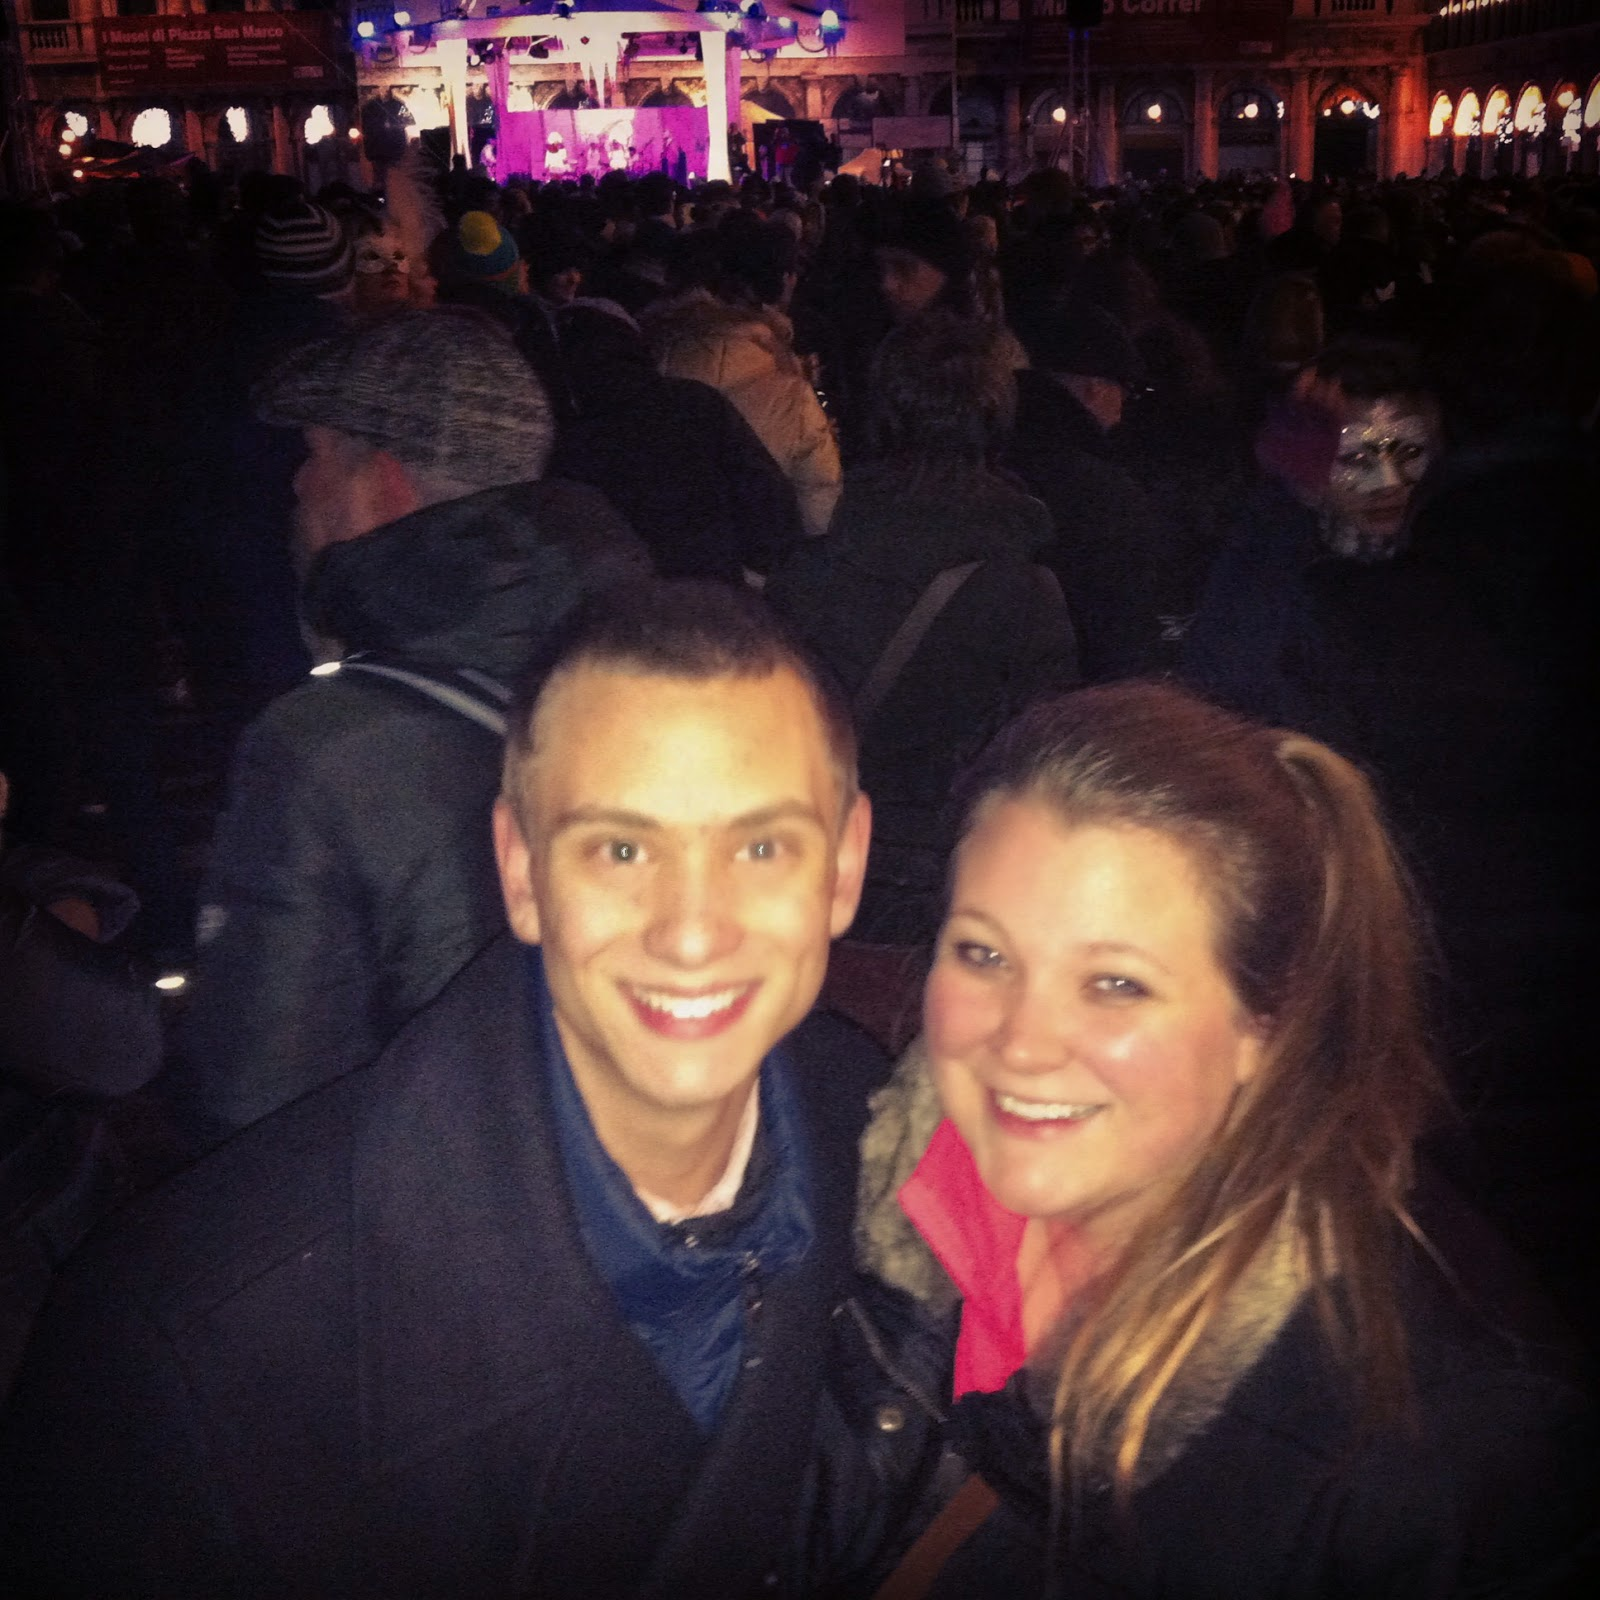 My brother & I in Piazza San Marco, New Years 2014